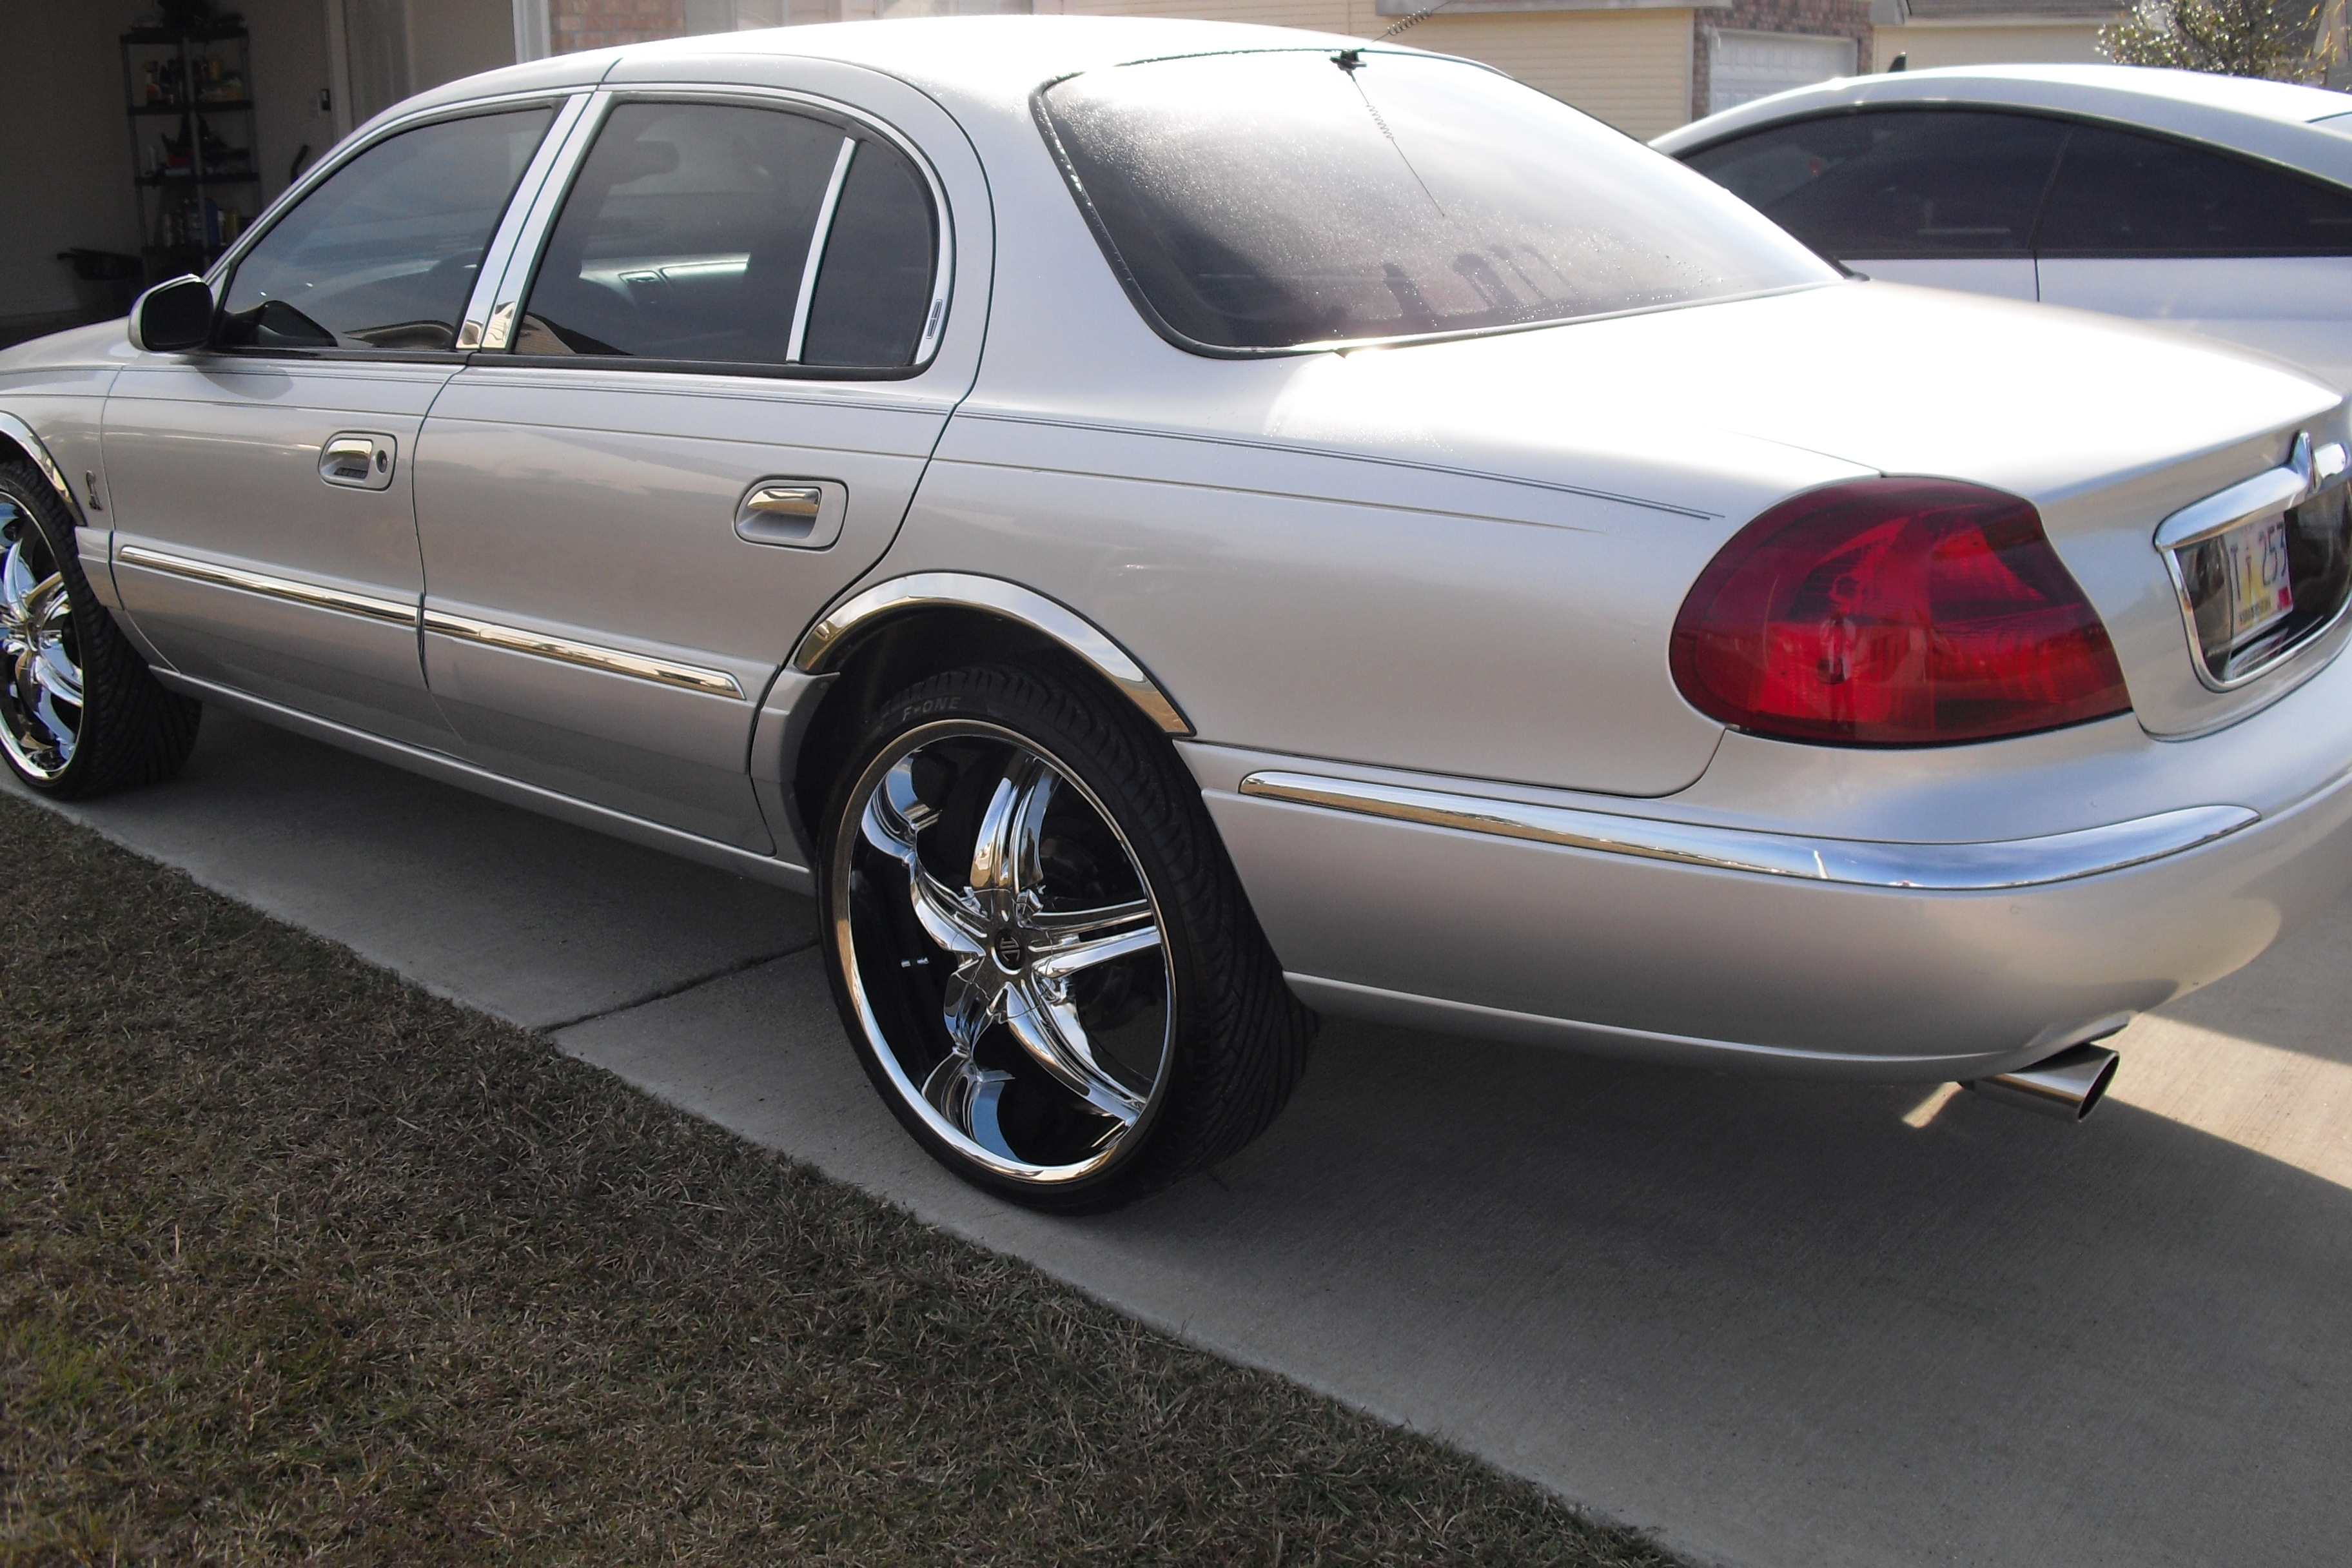 1stman 2000 Lincoln Continental Specs, Photos, Modification Info at